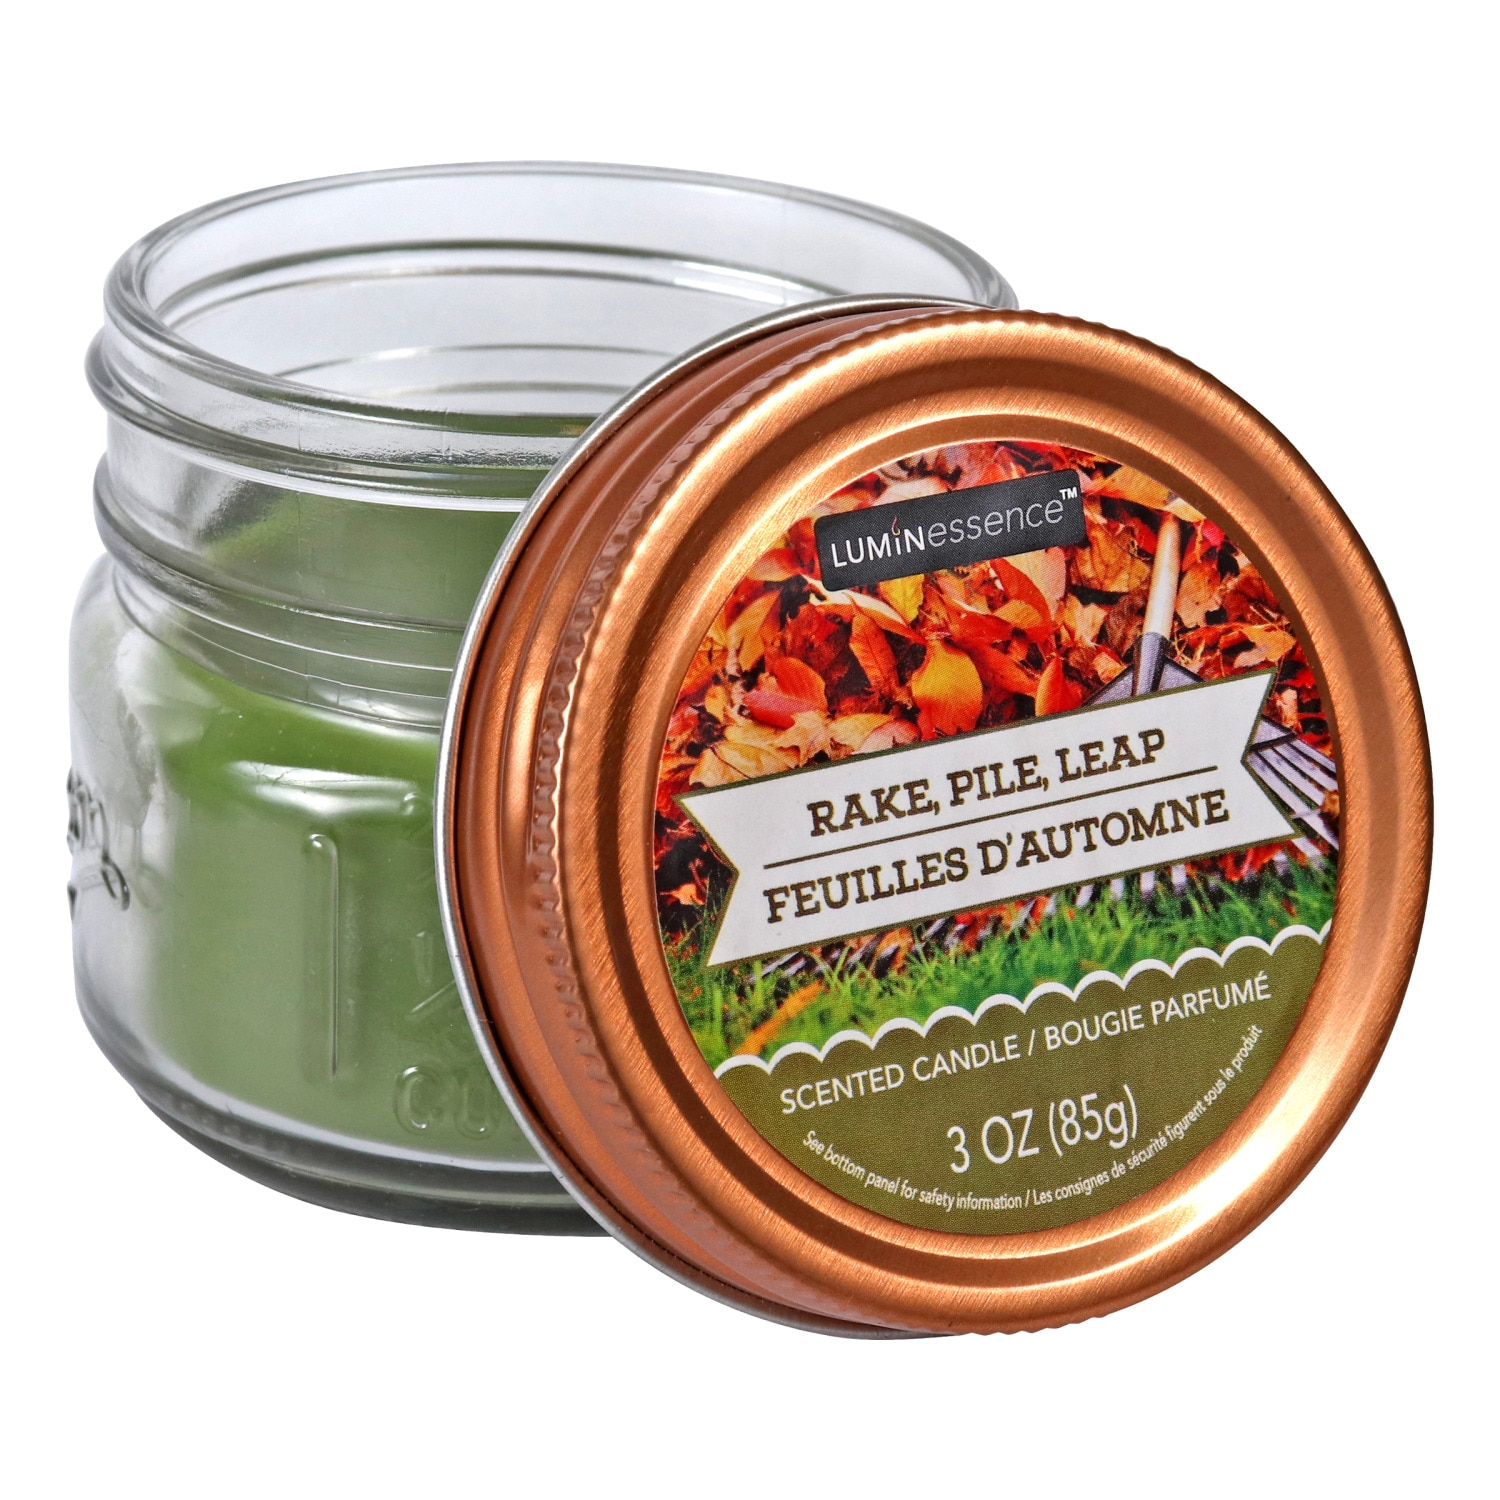 Candles For Home Scented 4 Pack Rake Pile Leap Scented Mason Jar Candles 3 Oz Scented Candles Walmart Com Walmart Com